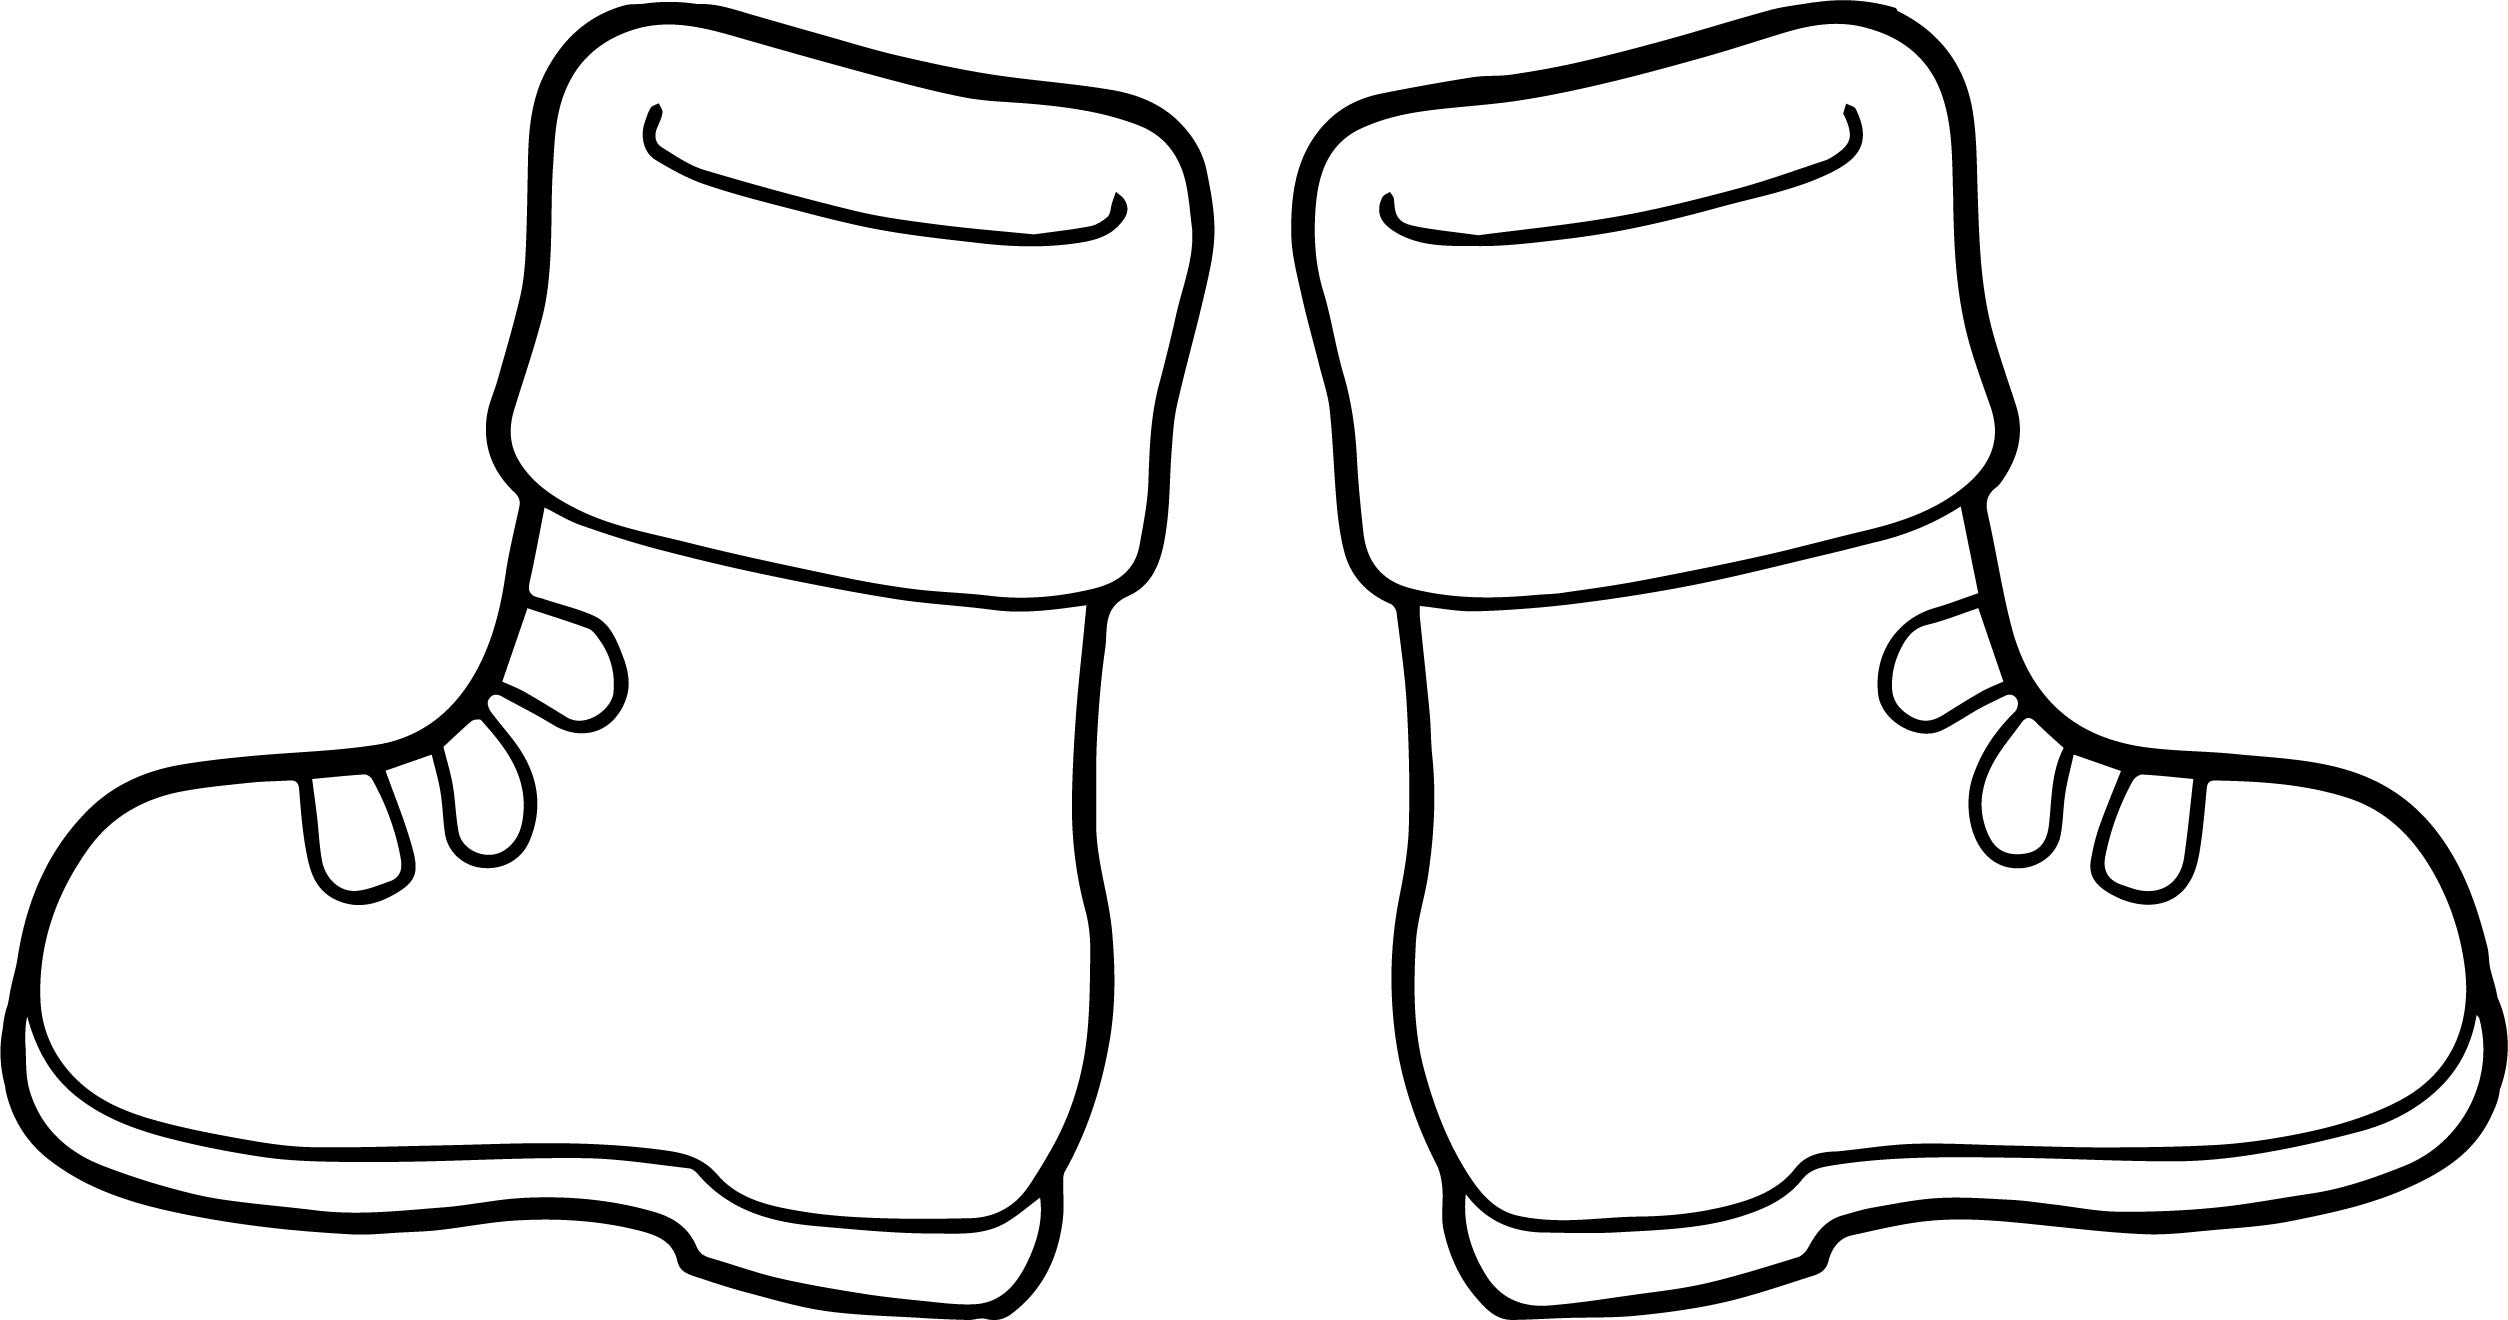 Foot Coloring Page Clipart